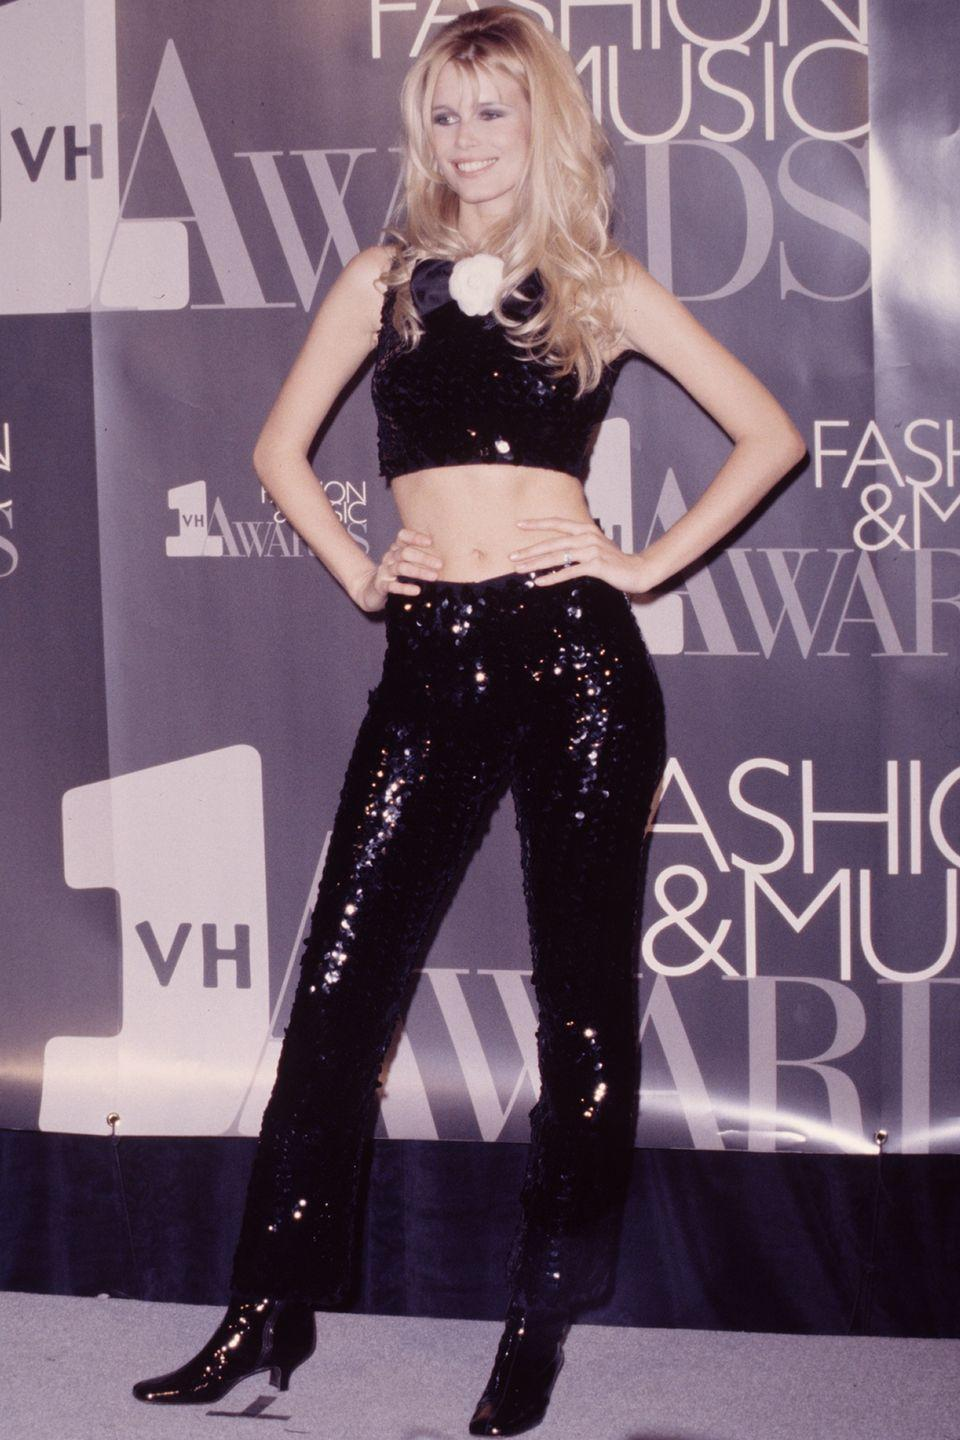 <p>At another Fashion Music Awards wearing skin-tight PVC jeans by Chanel and matching cropped top!</p>